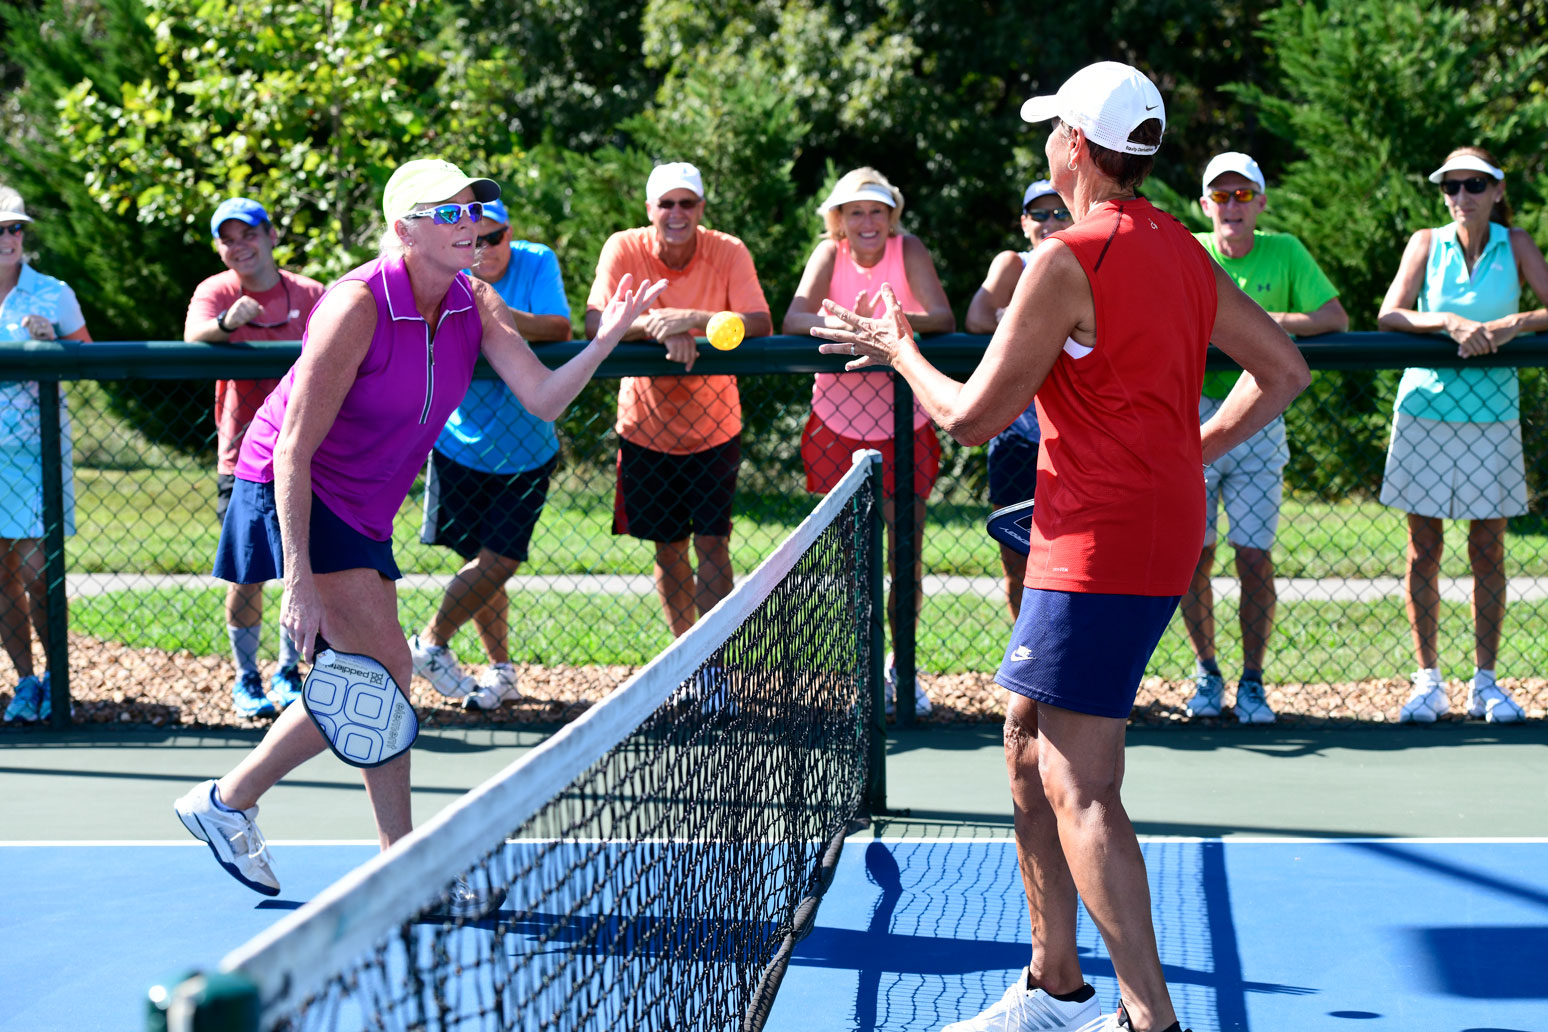 Spectators watching their fellow members of the pickleball club play a game.